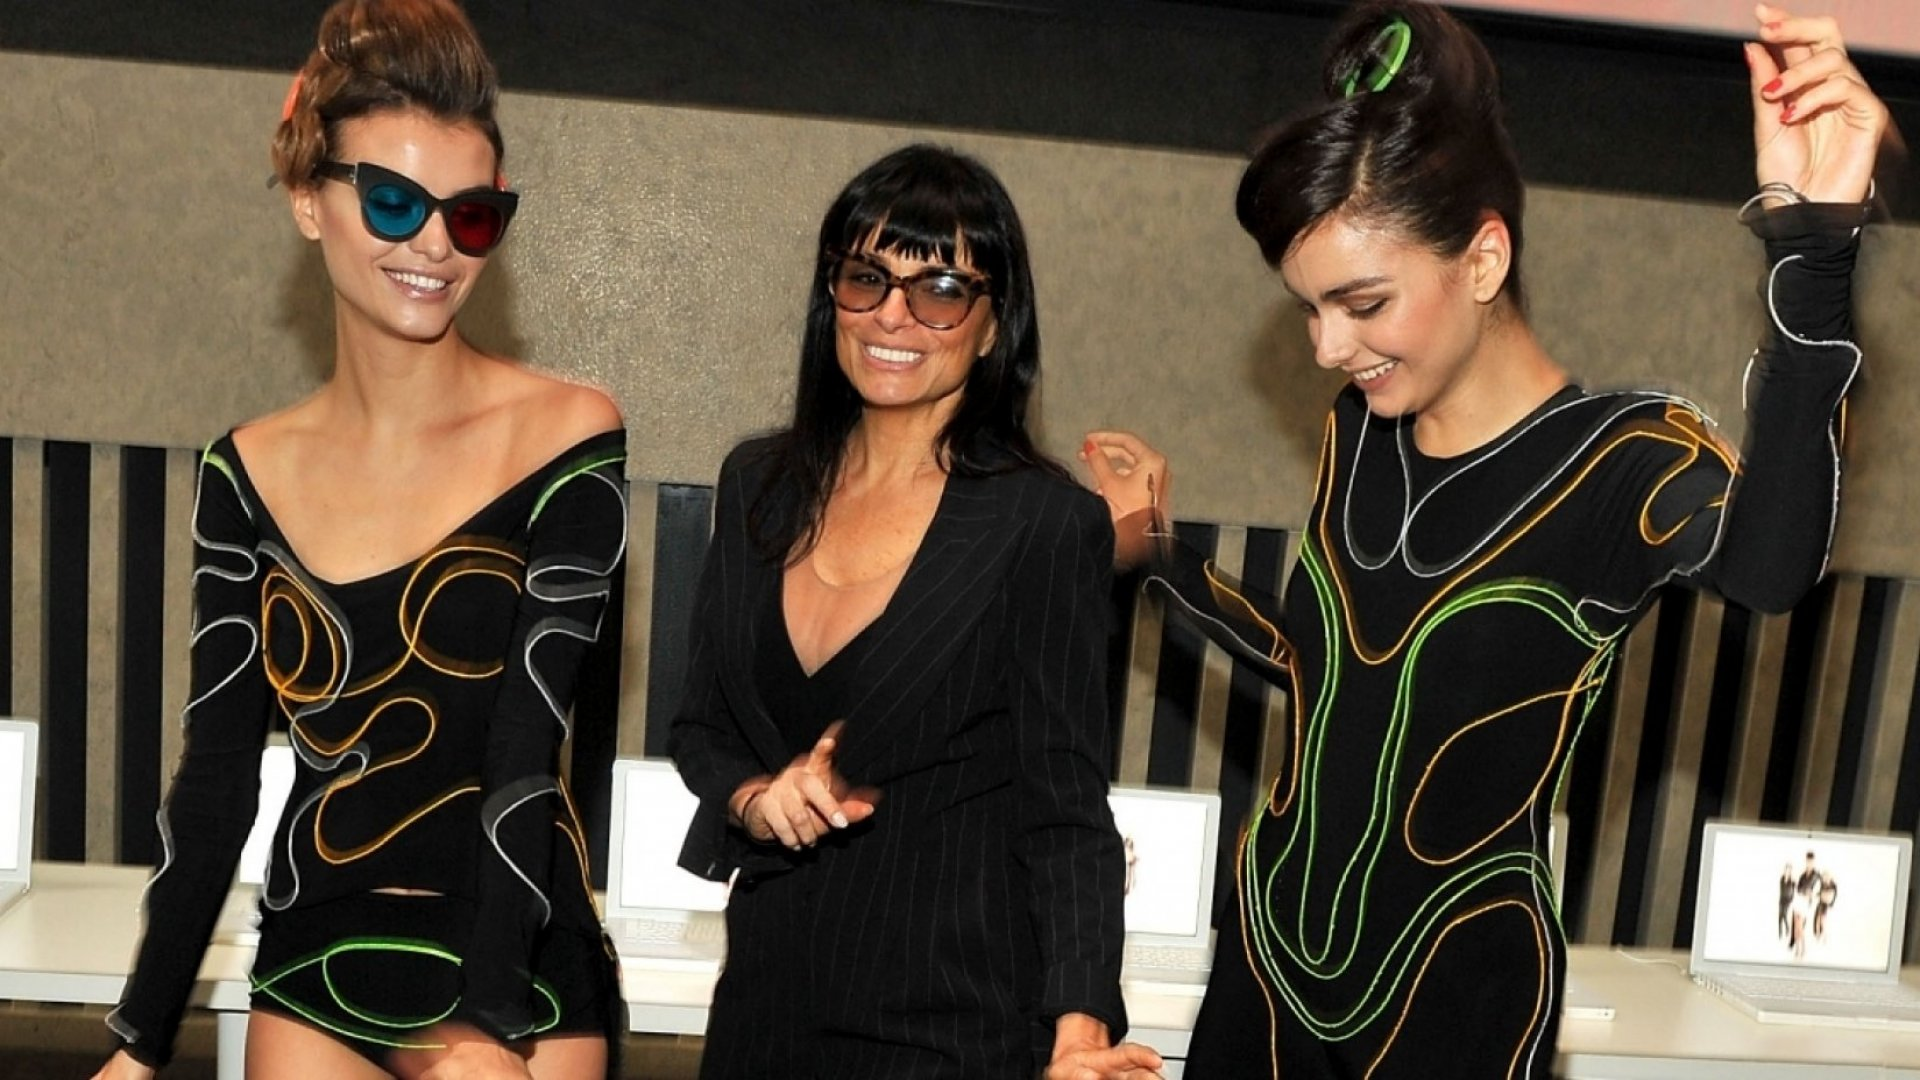 3 Tips for Female Leaders from Fashion Designer Norma Kamali